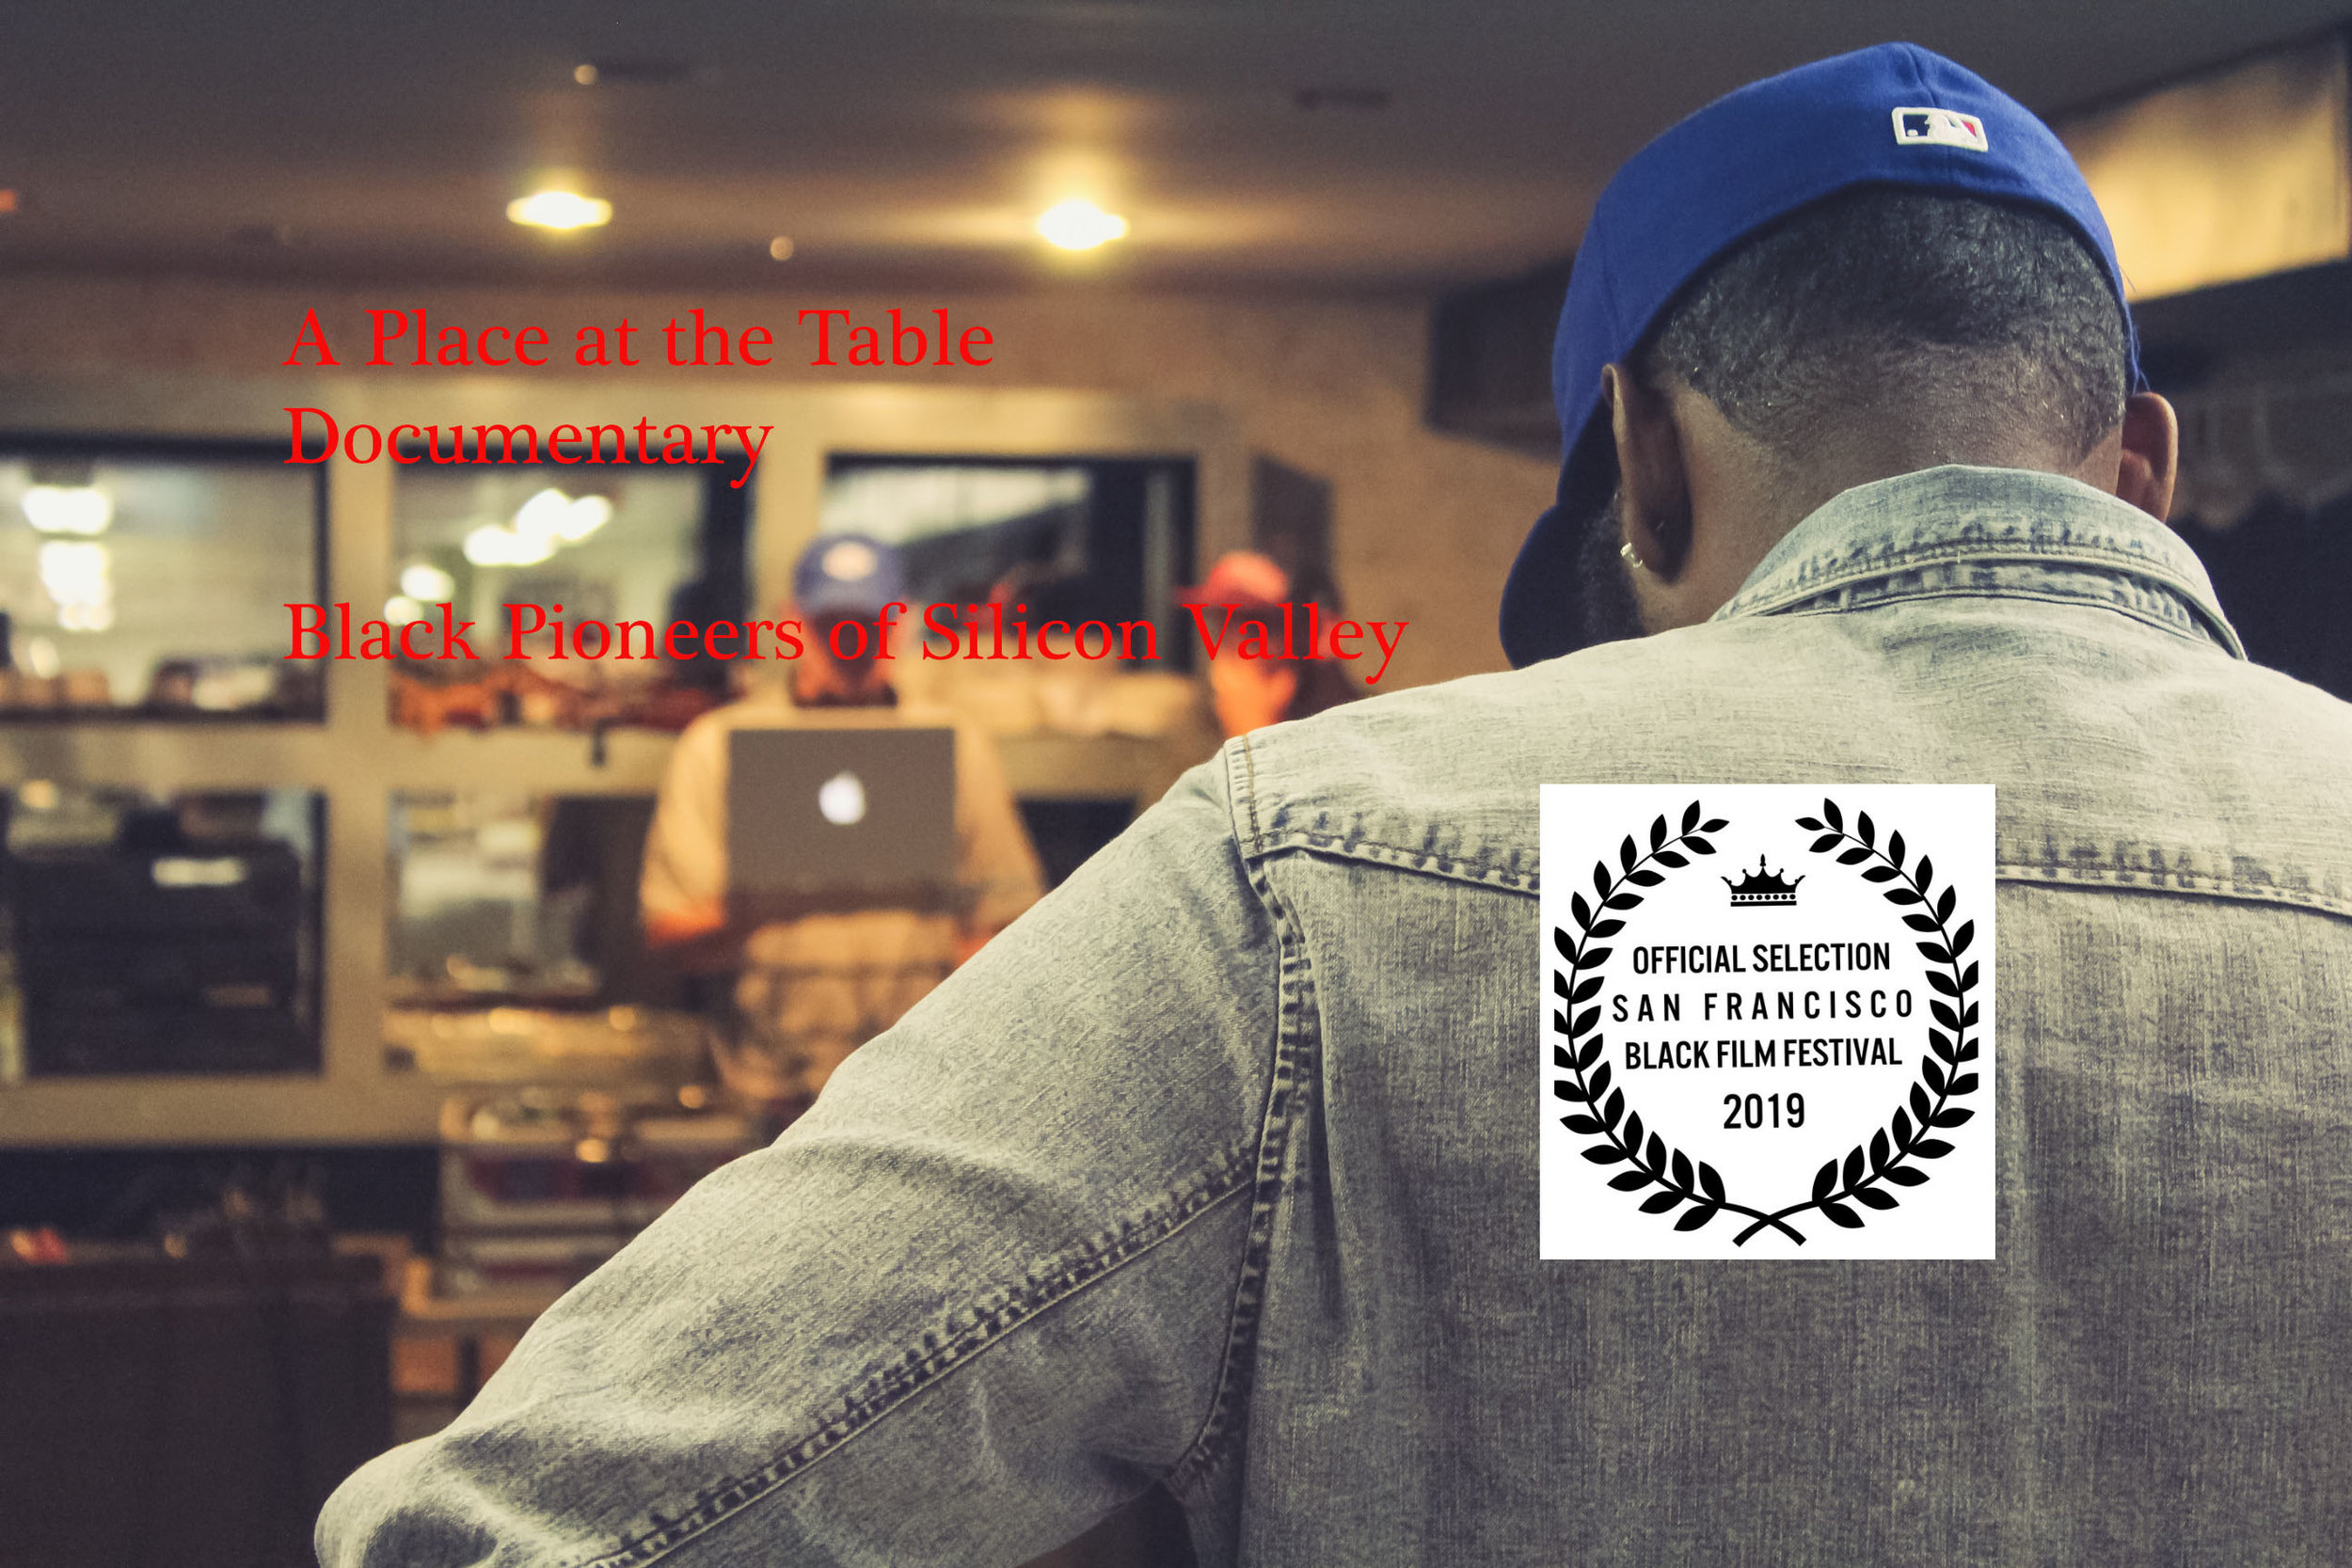 A Place at the Table a San Francisco Black Film Festival selection for 2019.